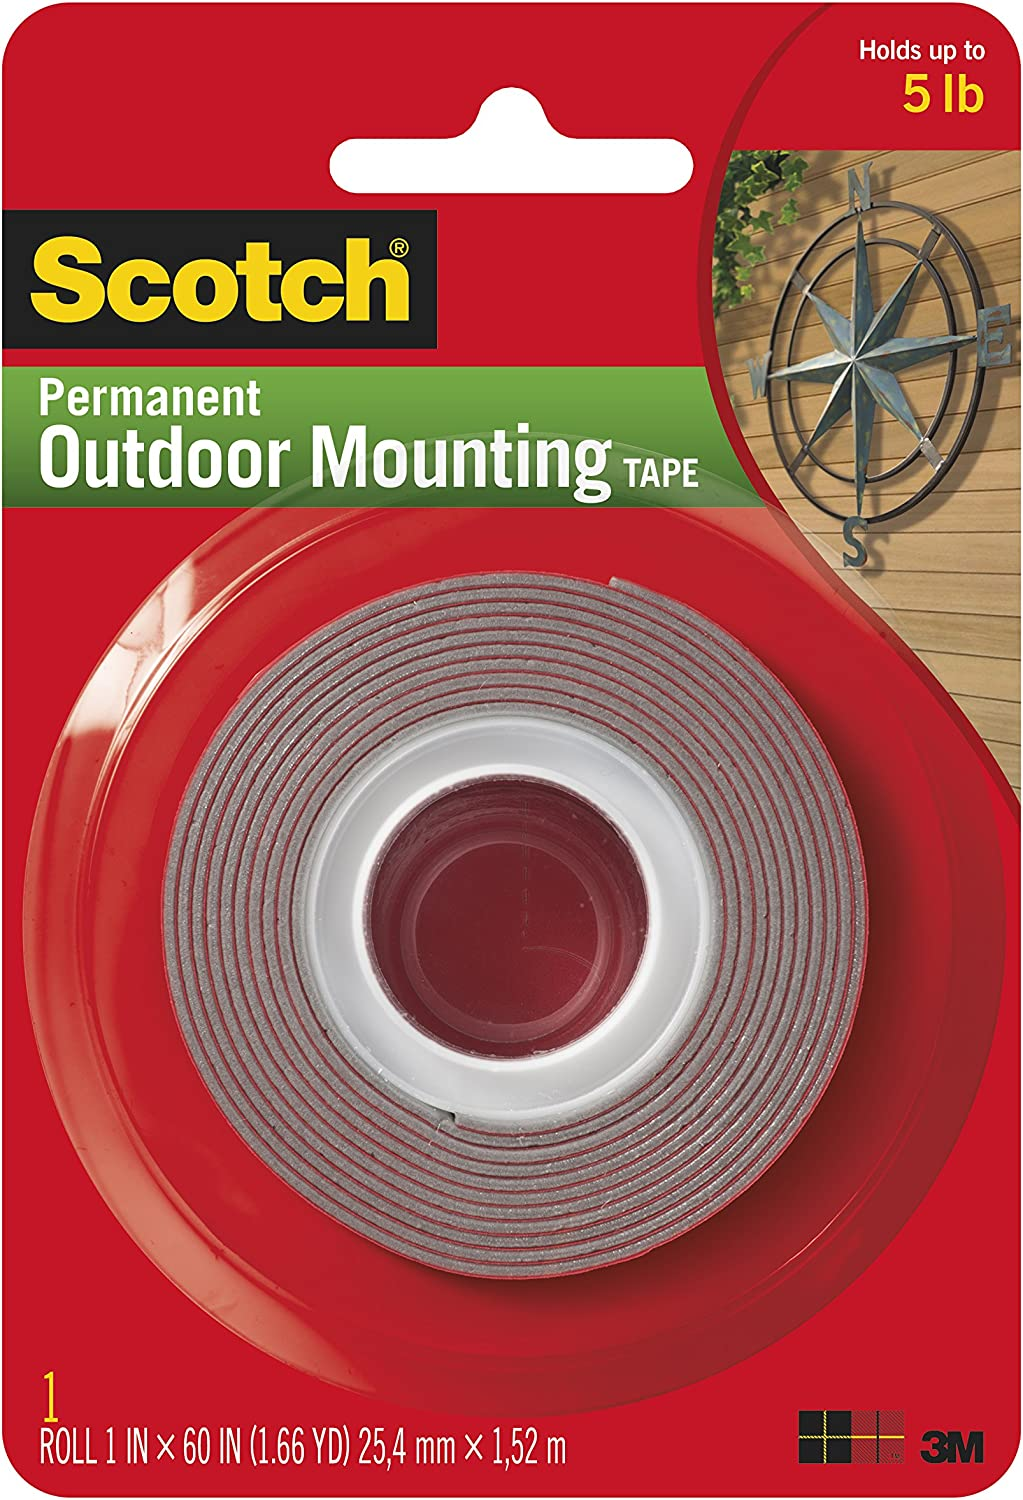 Heavy-Duty Exterior Mounting Tape, Holds 5 lb., 1 in x 60 in Roll: Home Improvement